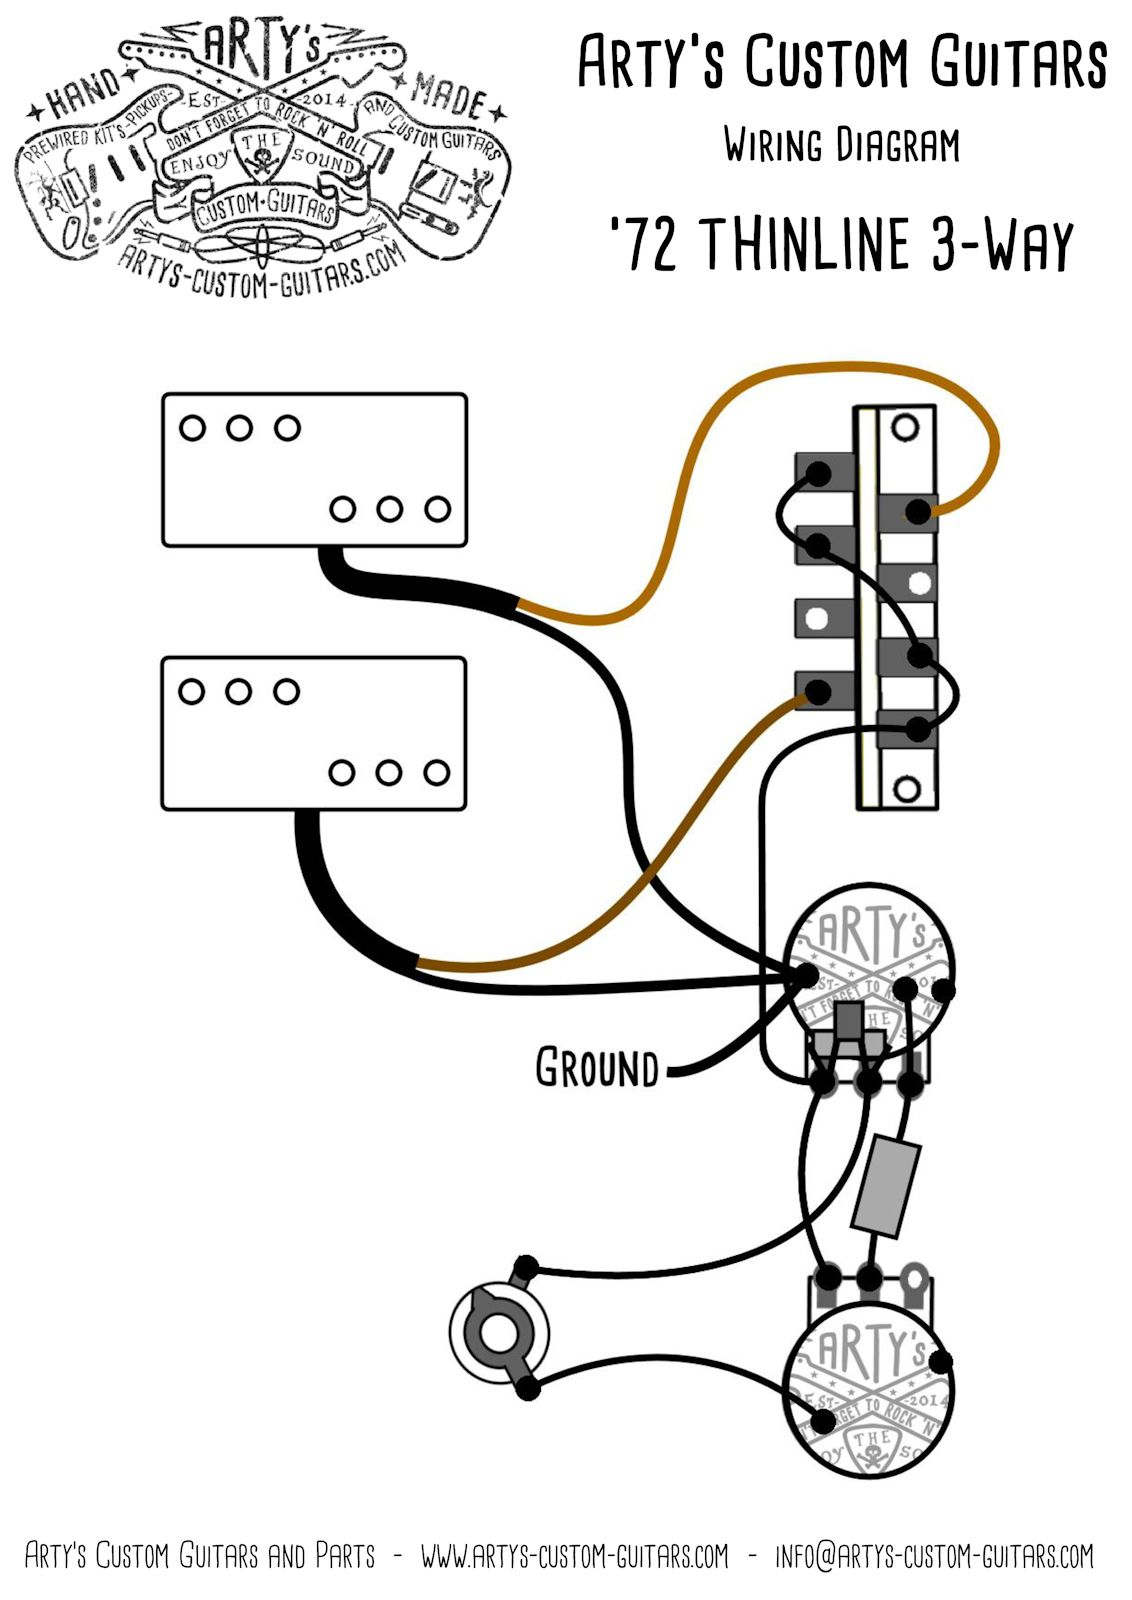 Swell Fender Telecaster Thinline Wiring Diagram General Wiring Diagram Data Wiring Digital Resources Indicompassionincorg